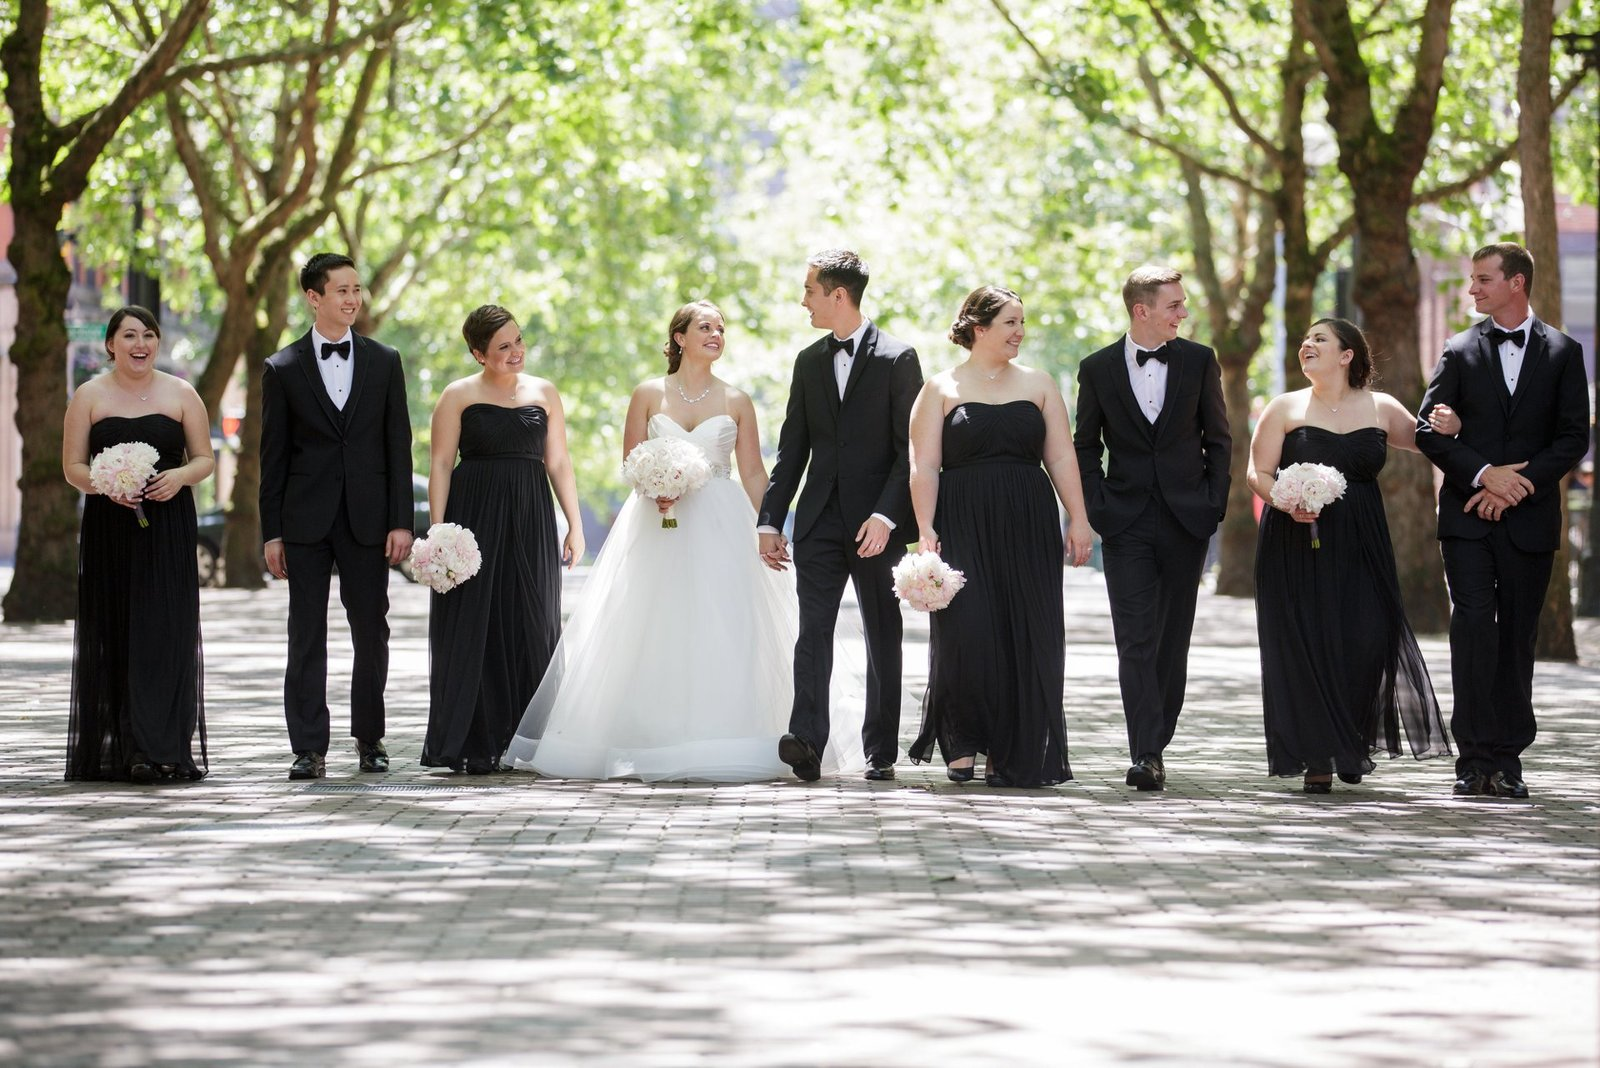 big-bridal-party-wedding-photos